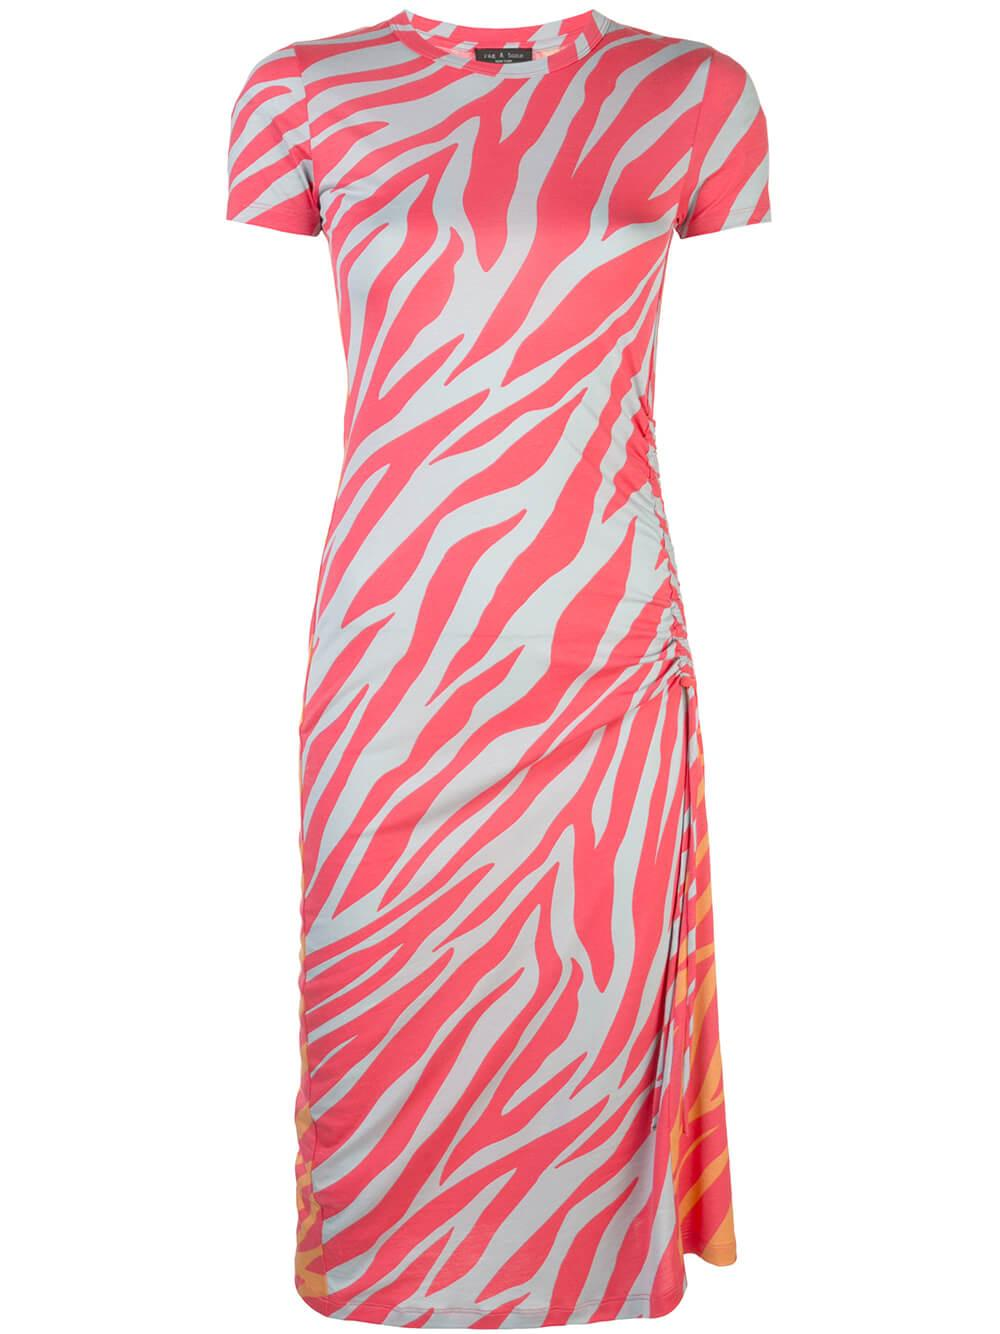 Ina Neon Zebra Stripe Dress